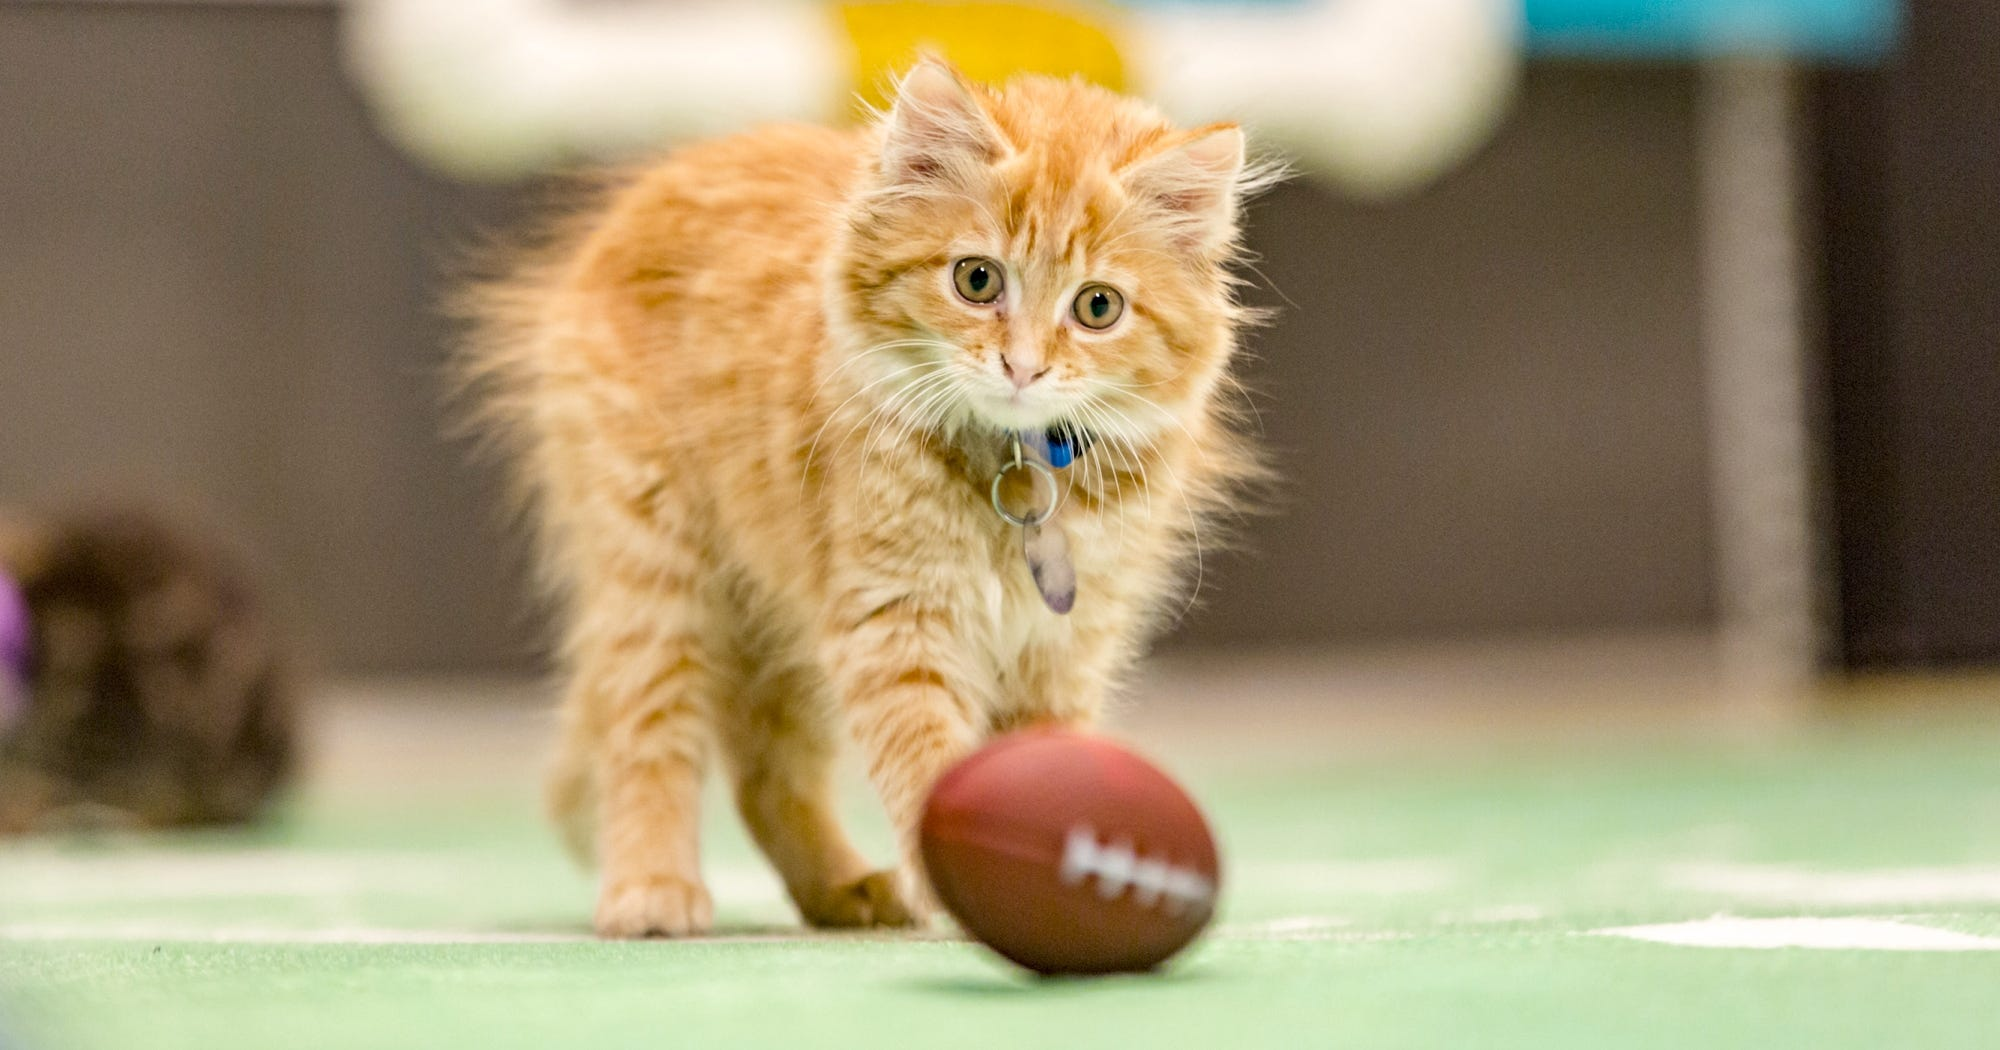 13 Moments From Kitten Bowl III That Are Purrfection